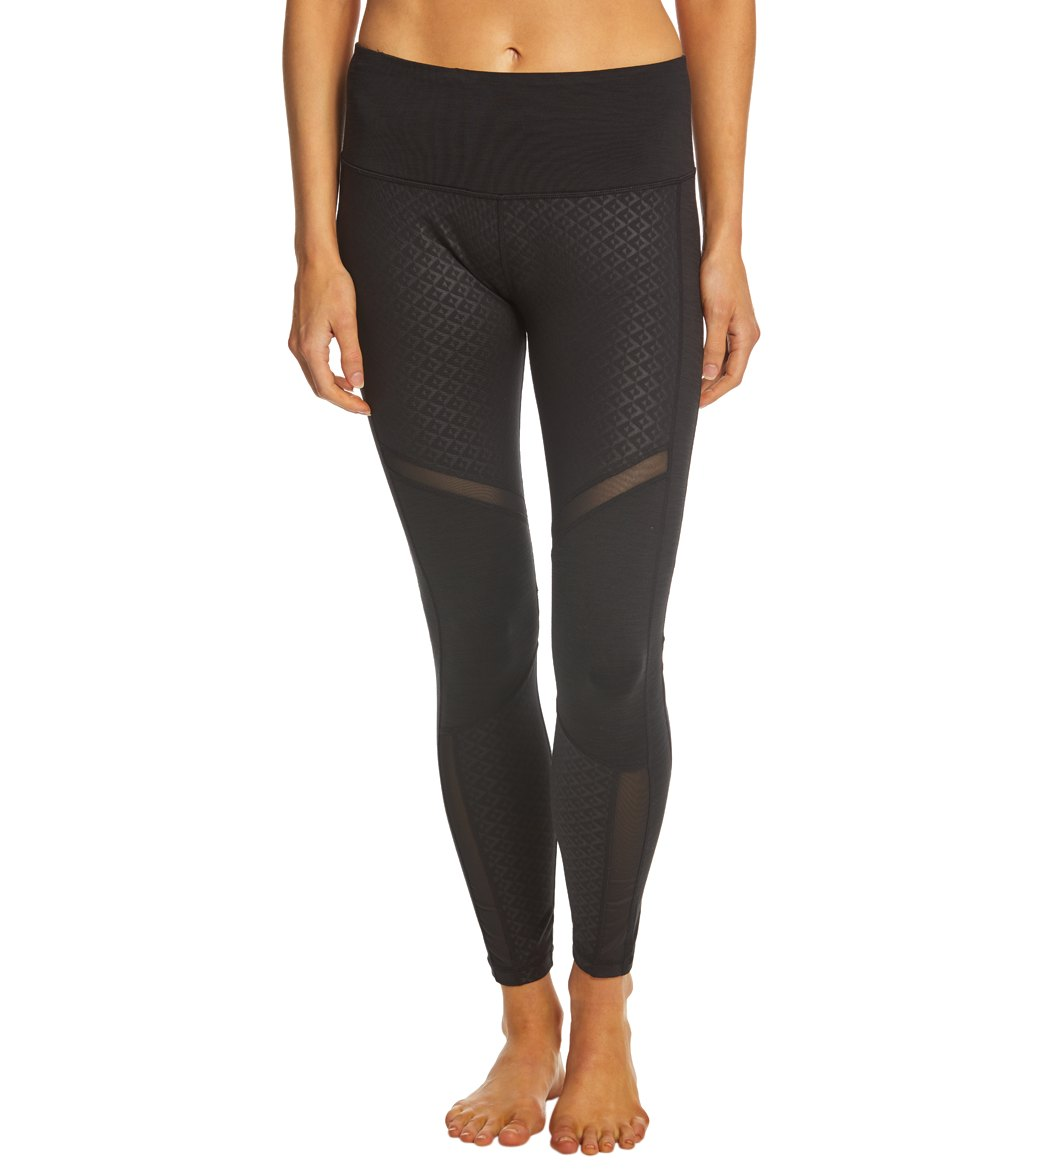 1e0a287b6a3f83 Manduka Racer Yoga Leggings at YogaOutlet.com - Free Shipping